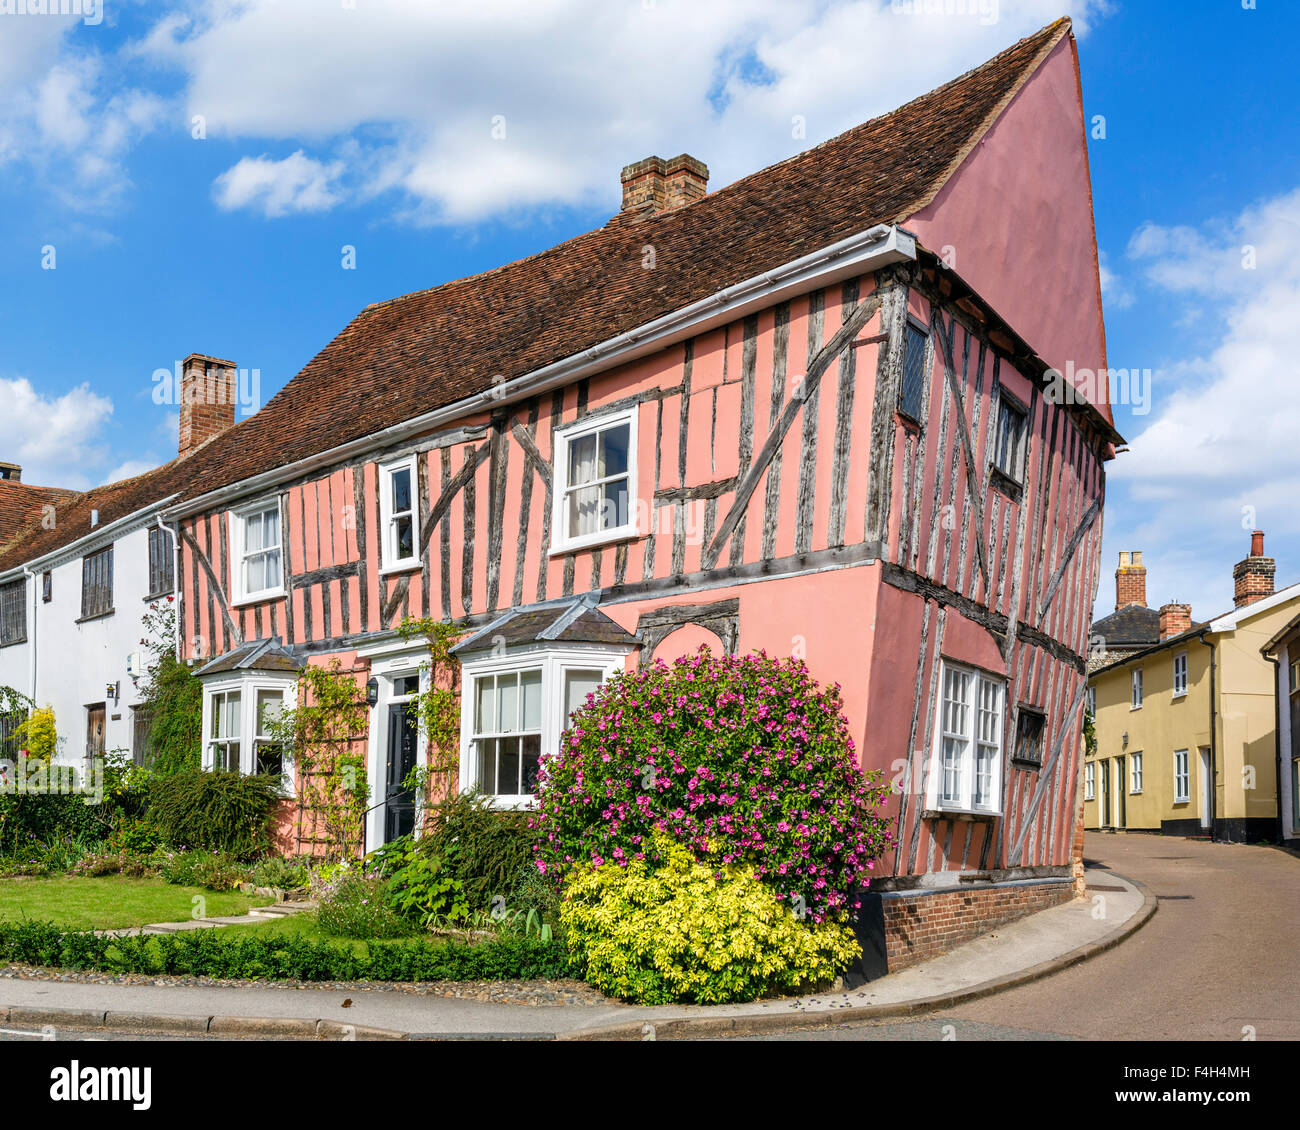 Lavenham Suffok. A colourful old crooked house in the village of Lavenham, Suffolk, England, UK Stock Photo